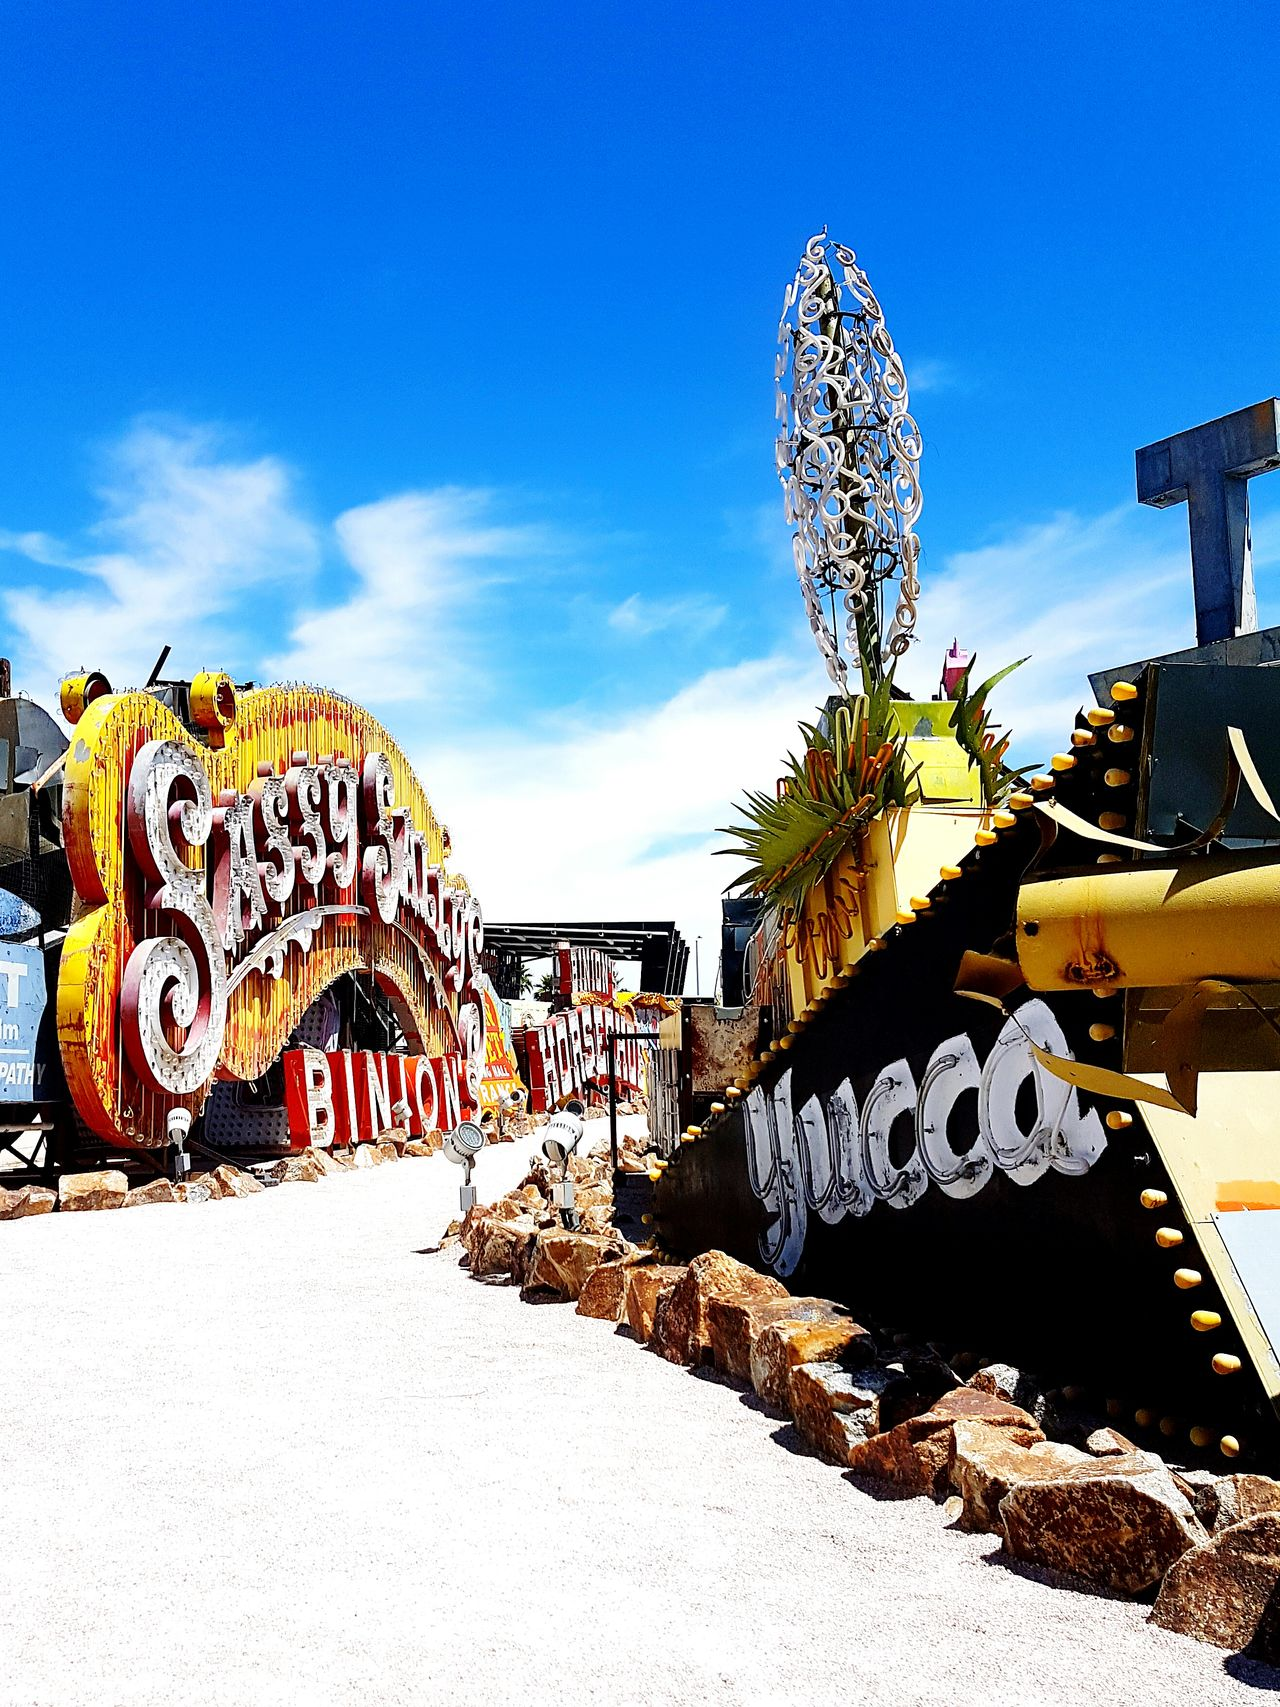 Las Vegas Neon Sign Neon Lights Neons Vintage Vibrant Color Retro Oldvegas Nevada Museum Outdoormuseum Sassy Yucca Yuccaplant